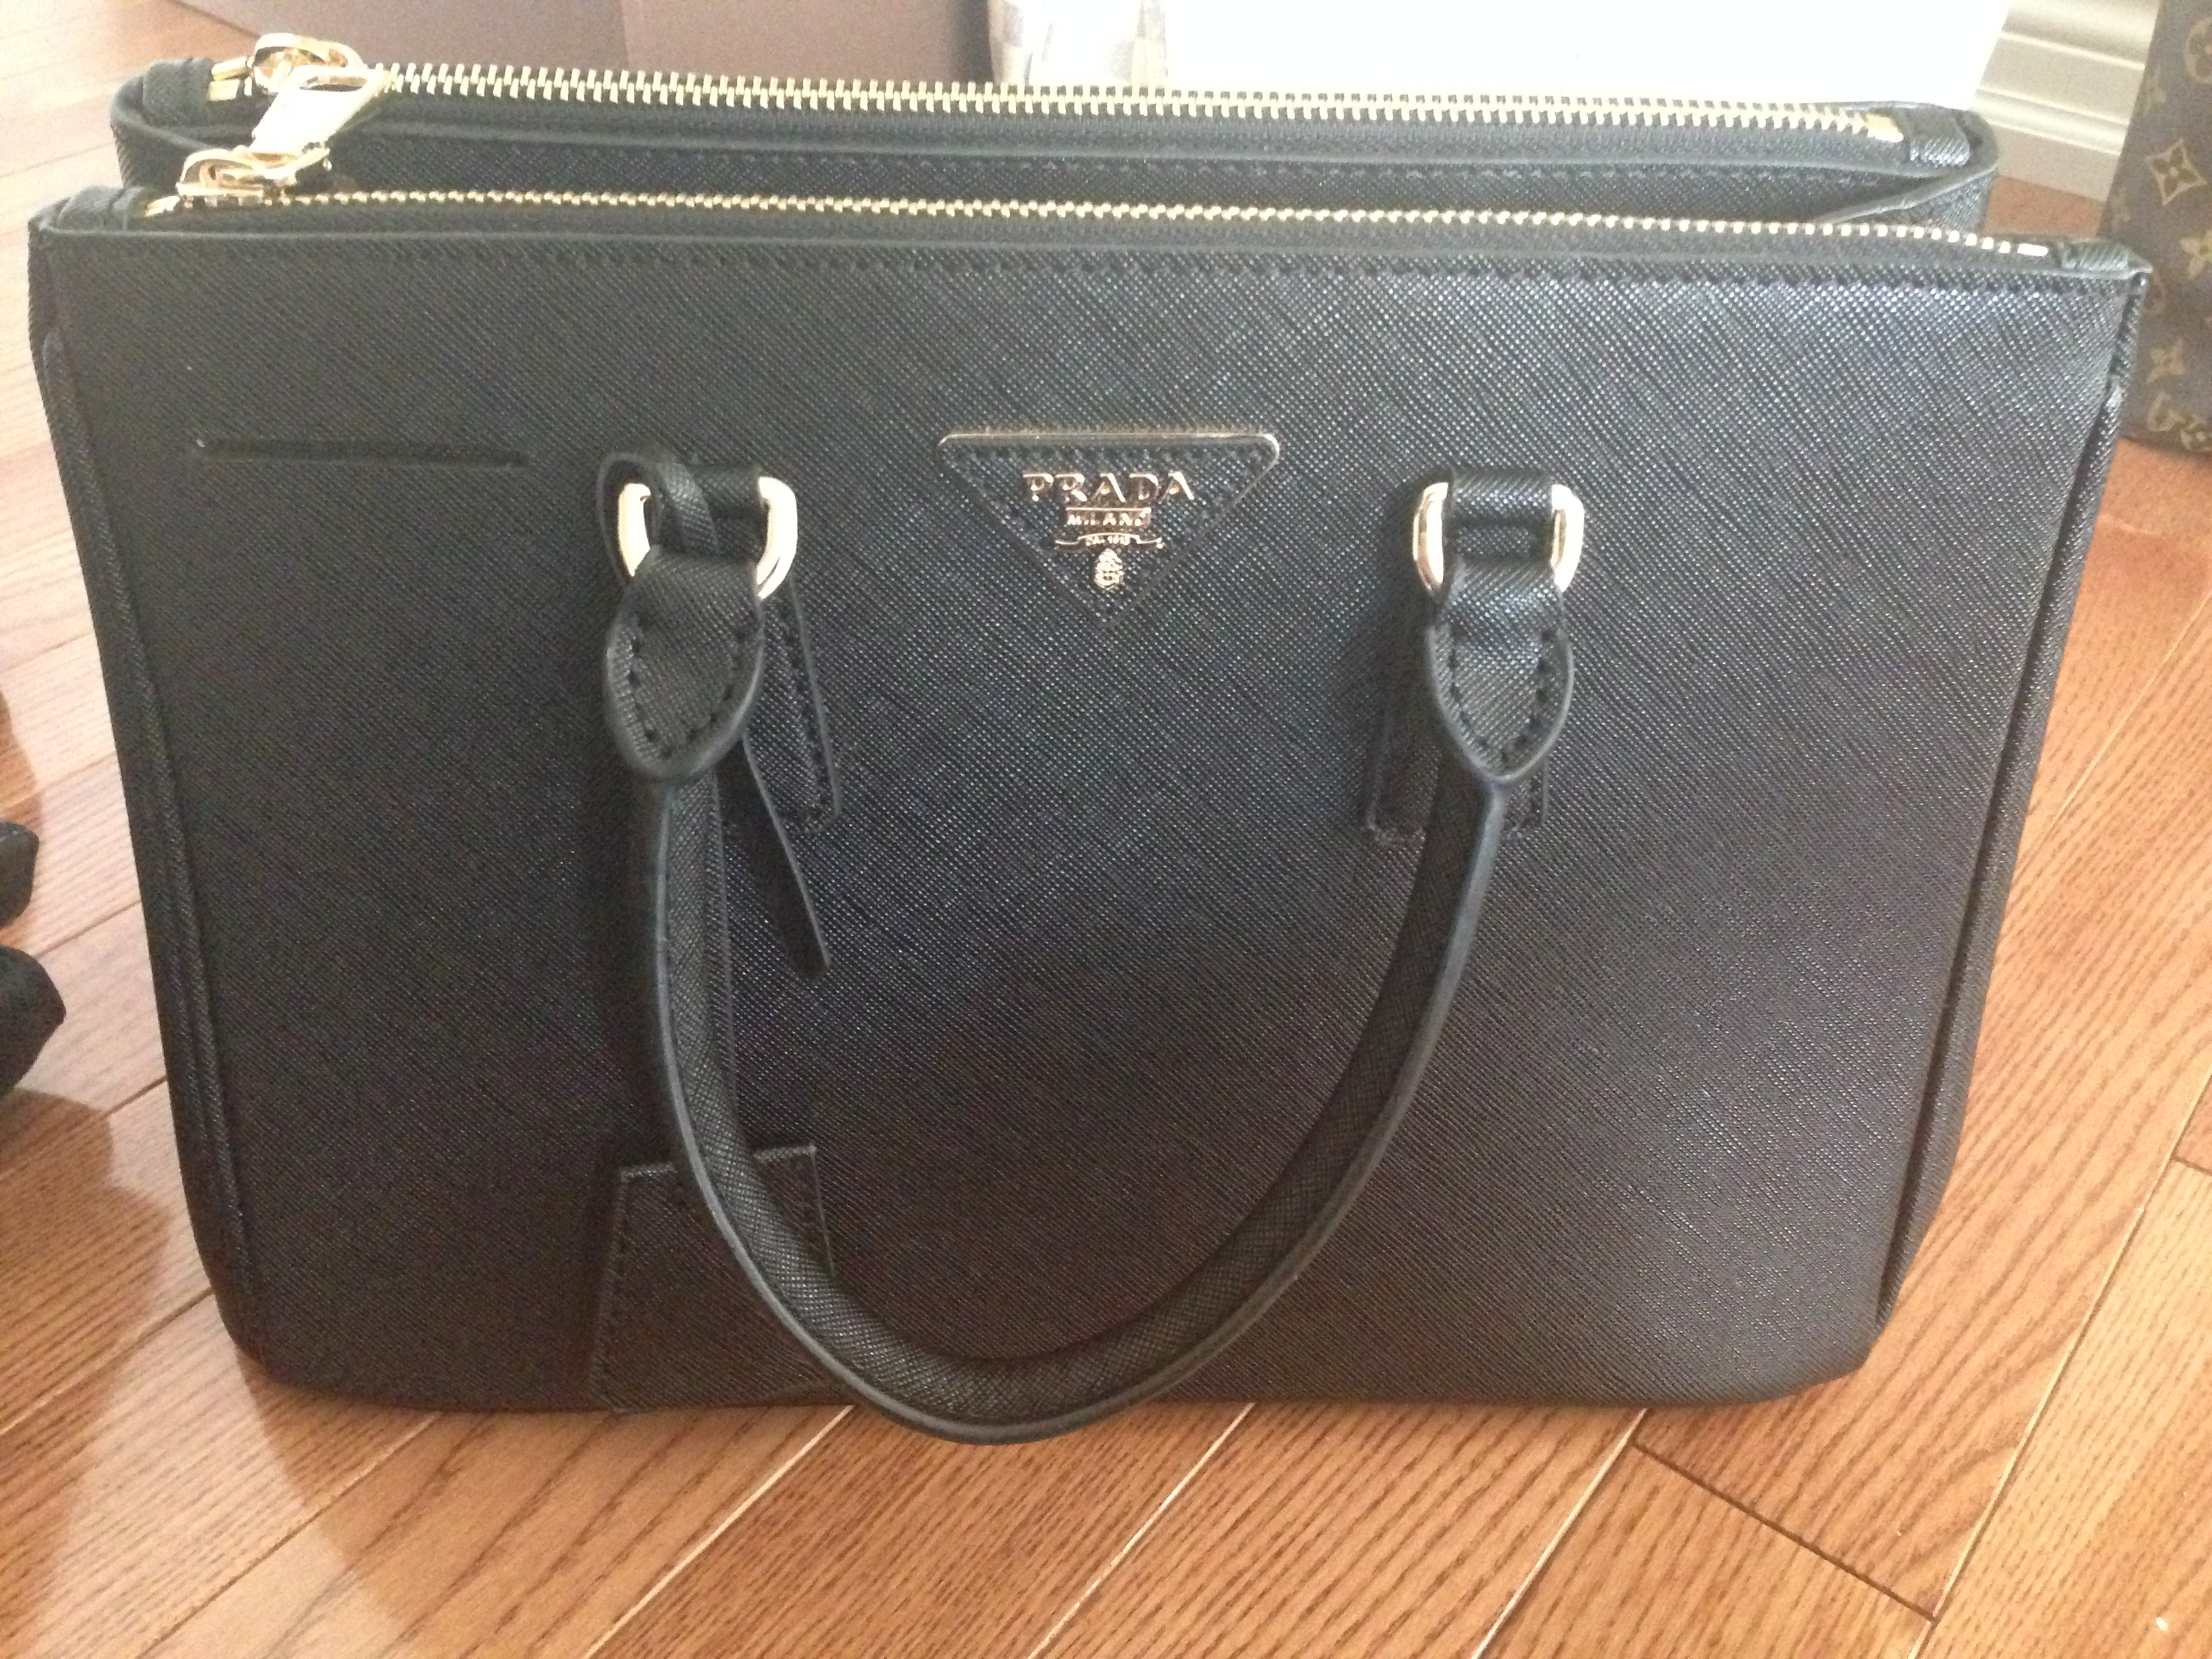 how much is a prada tote bag - fake Prada �C Authentic & Replica Bags & Replica Handbags Reviews ...